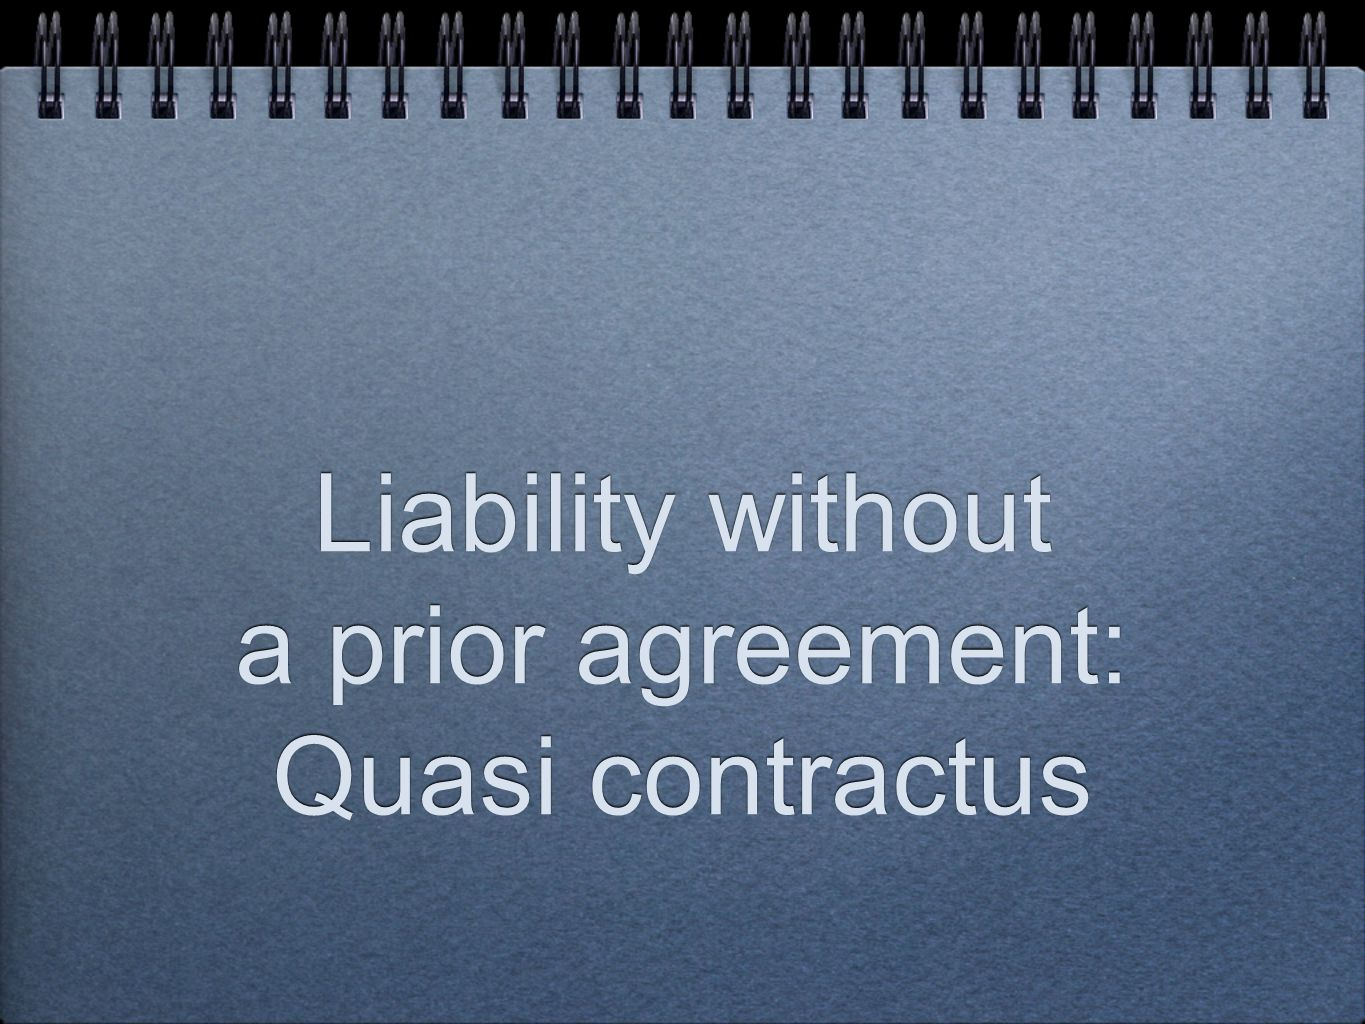 Liability without a prior agreement: Quasi contractus